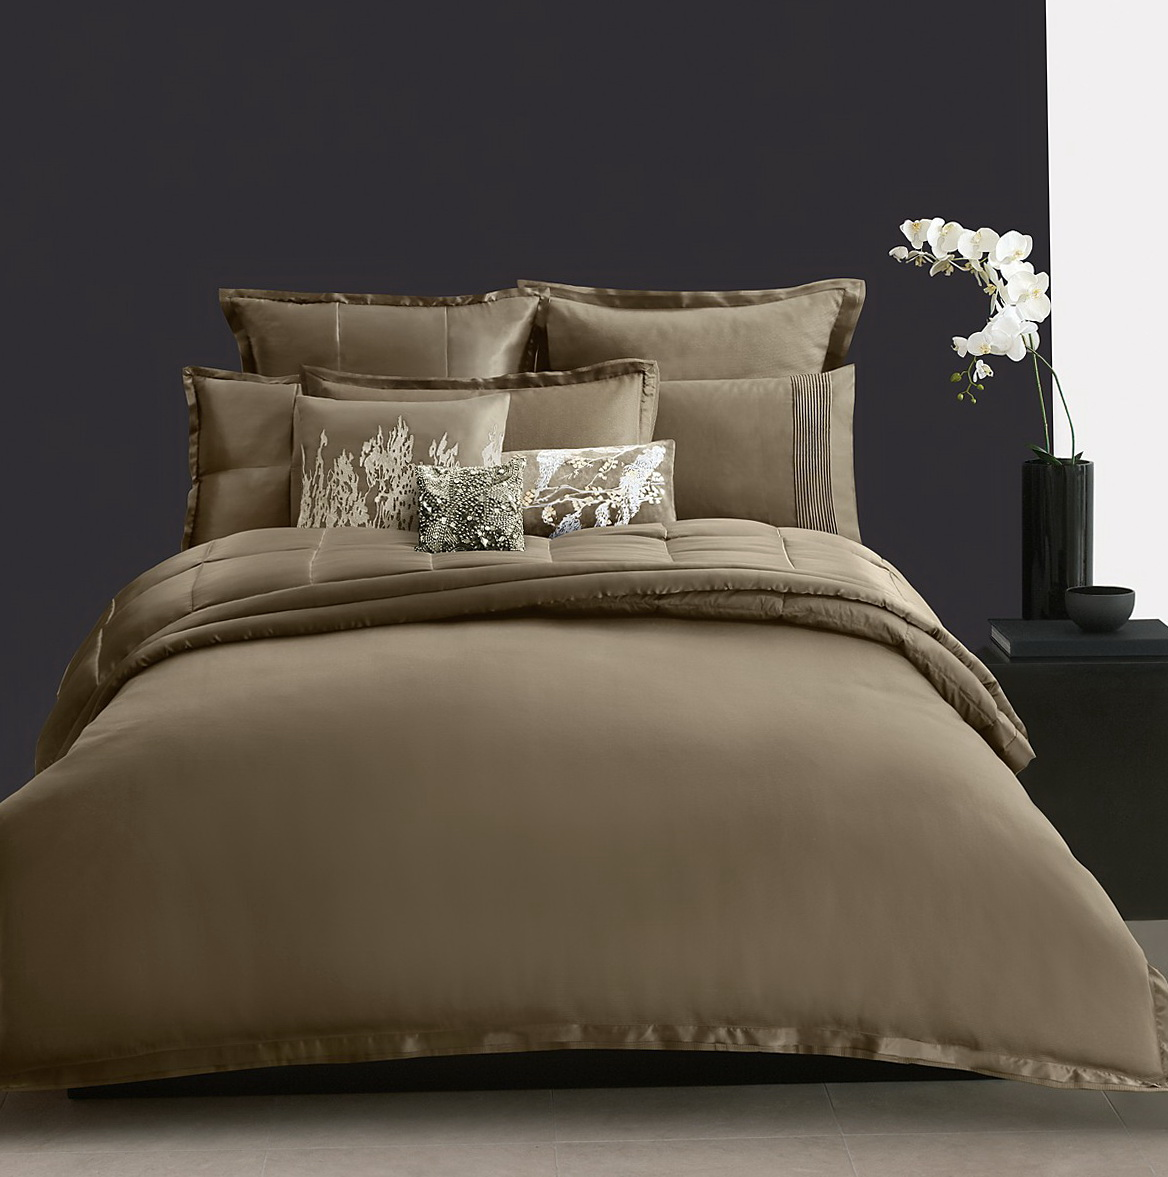 Donna Karan Bedding Modern Classics Gold Leaf Collection